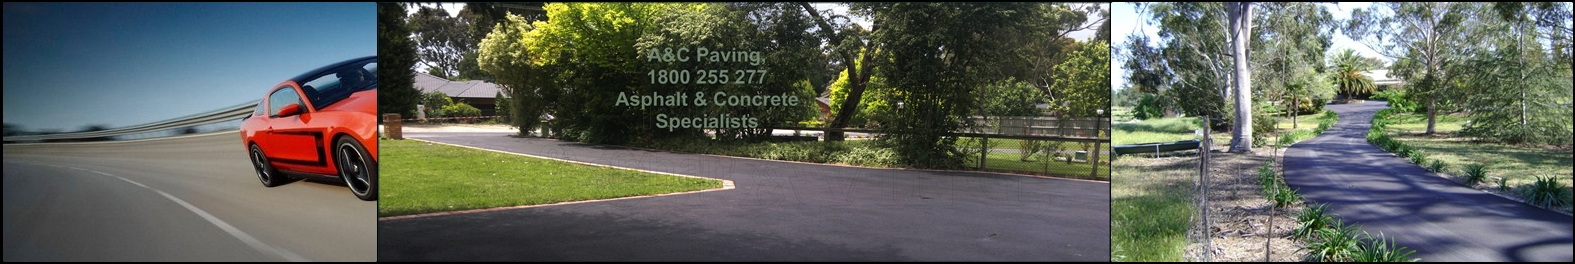 Cheapest Paving, Asphalt, 1800 255 277